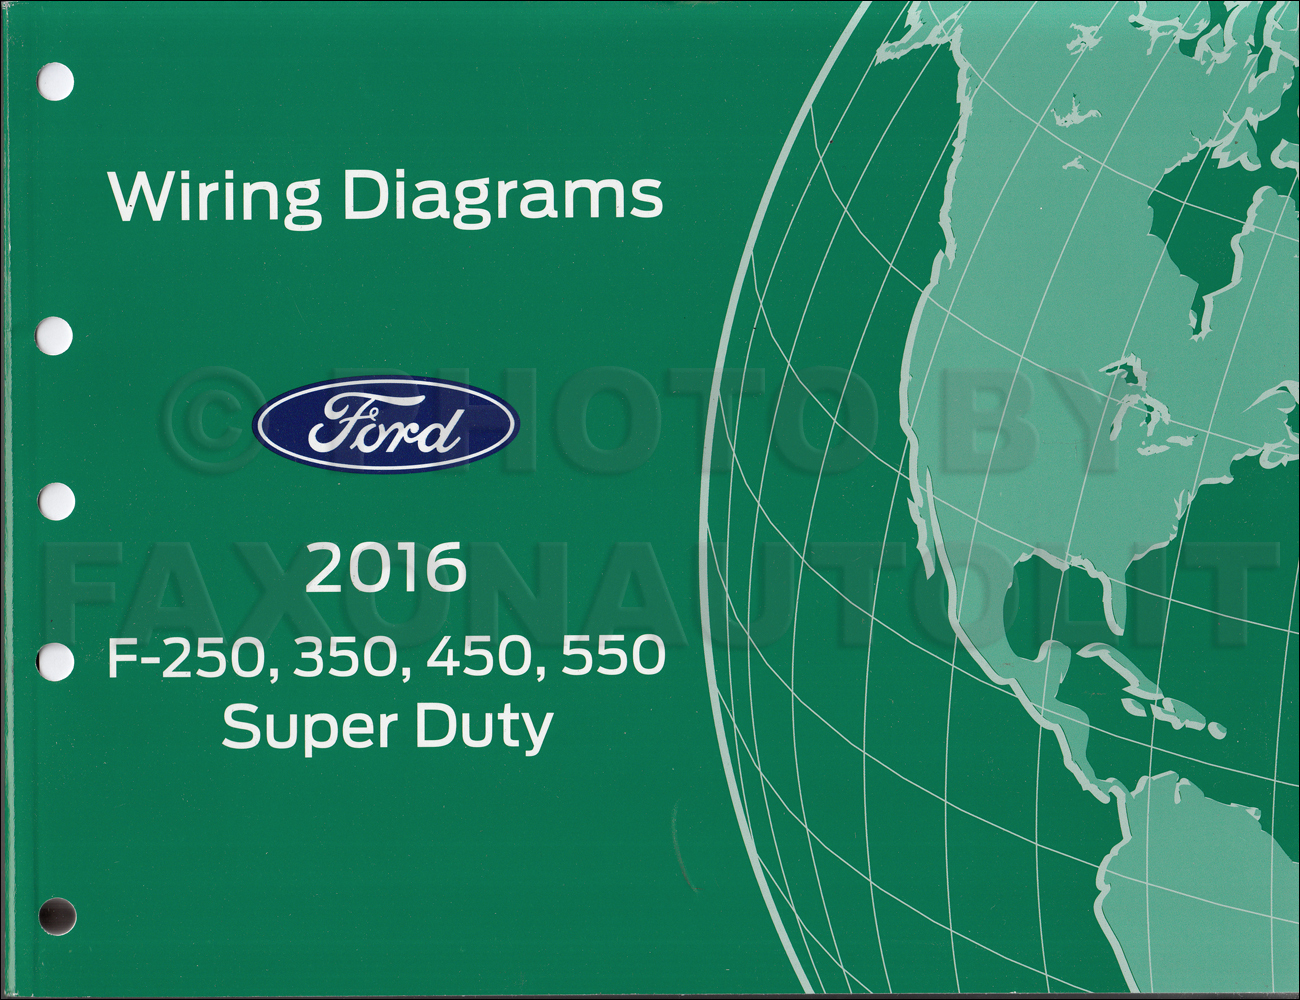 2016 Ford F250-F550 Super Dutytruck Wiring Diagram Manual Original - Ford F250 Wiring Diagram